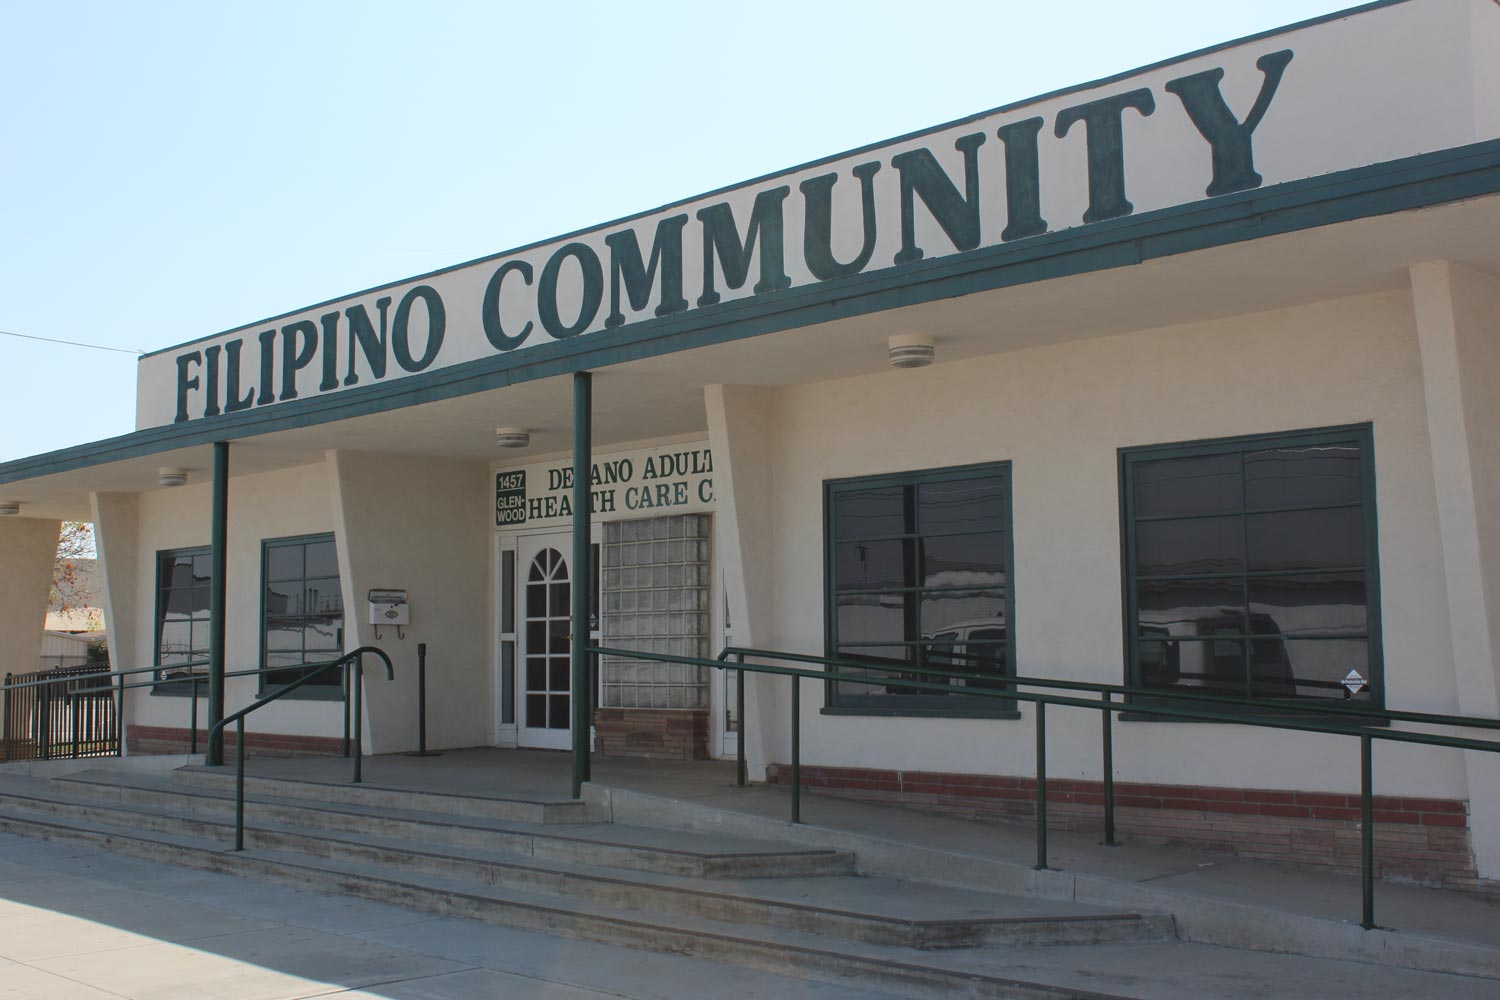 The Filipino Community hall in Delano, California is a landmark location for the struggle for farm workers in the area. Over the years, it has held numerous rallies and speeches, as local workers advocated for reforms. Today, it's an adult health care center for seniors in the city. (Photo by Dorian Merina)